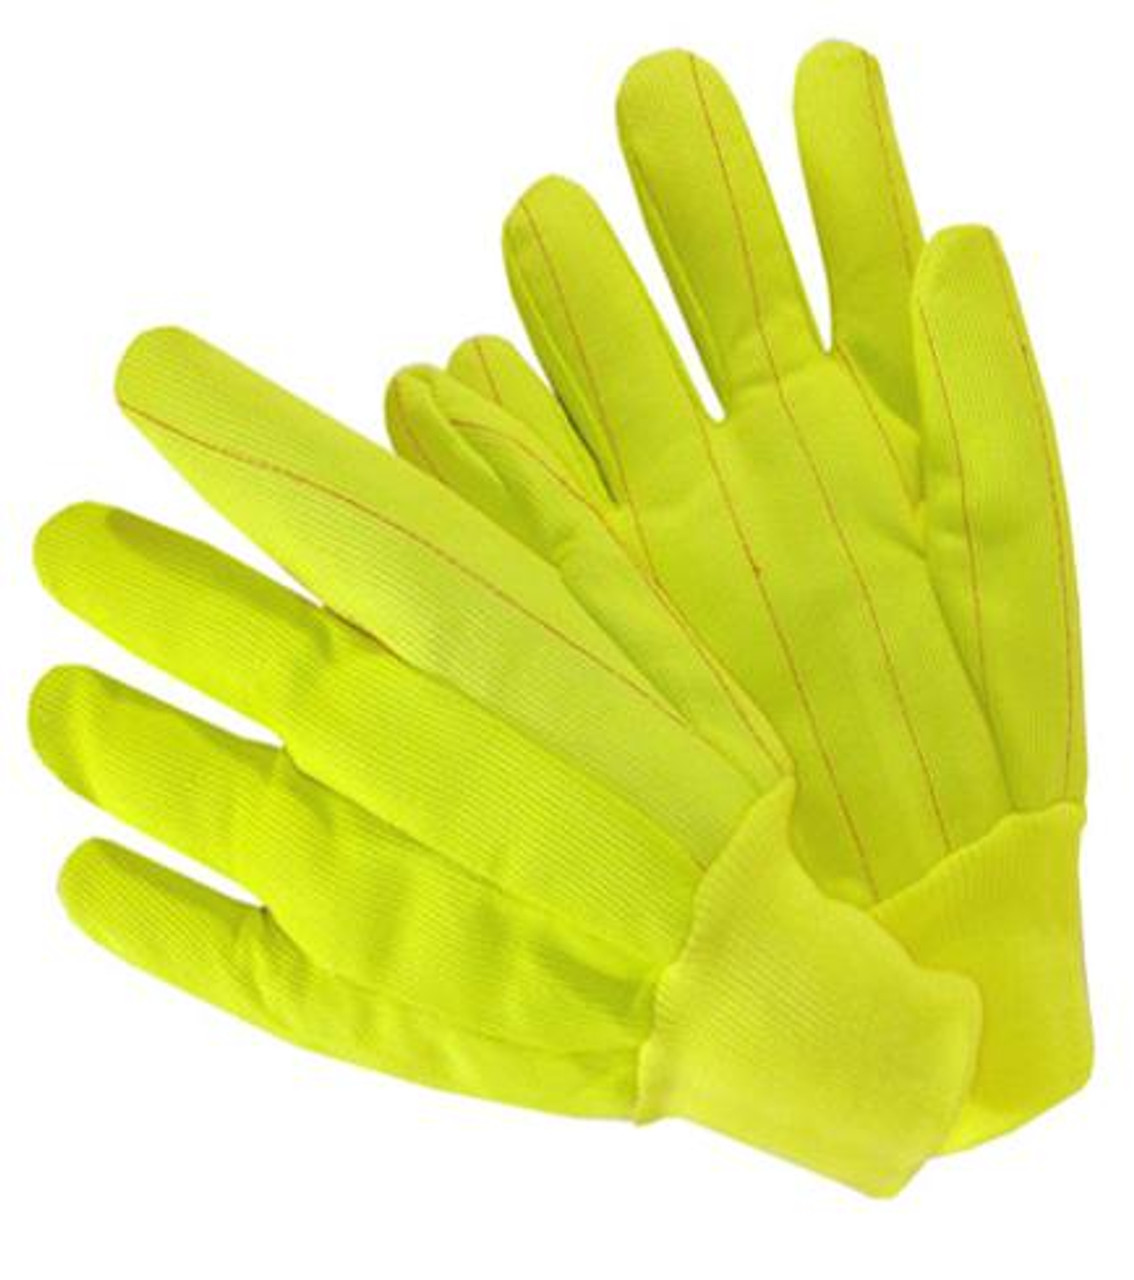 Durawear 20oz Nap-In Double Cotton poly Corded Knit Wrist Gloves Yellow